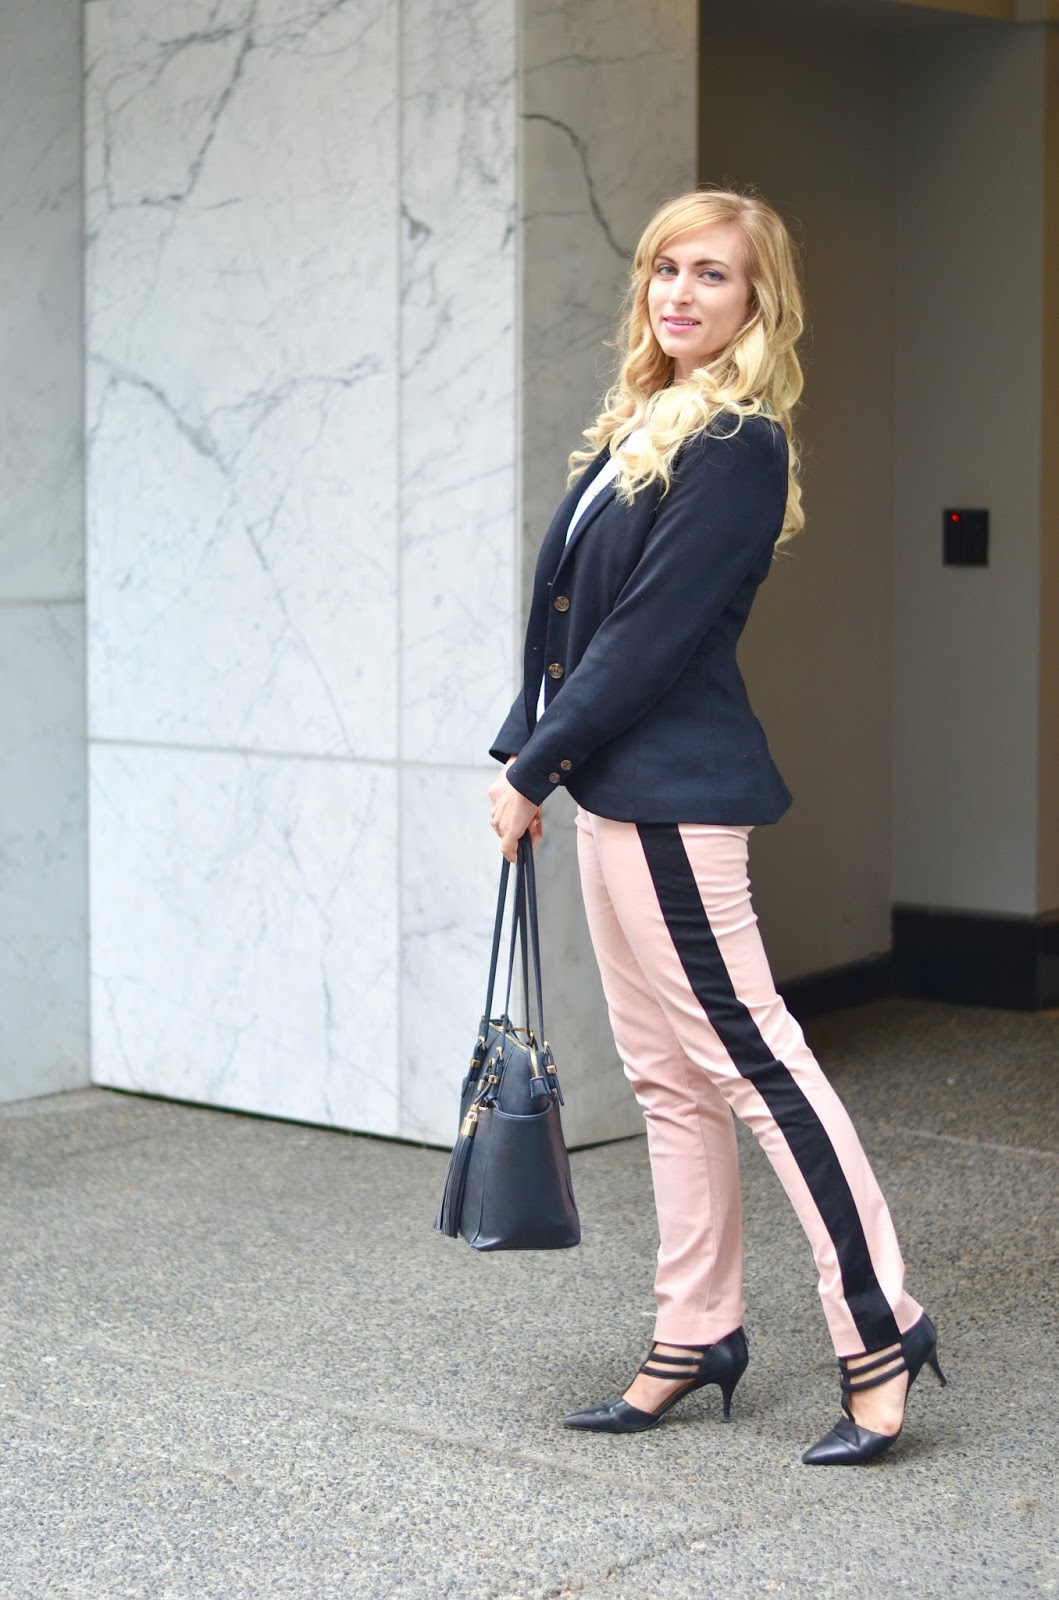 how to style pink pants for work